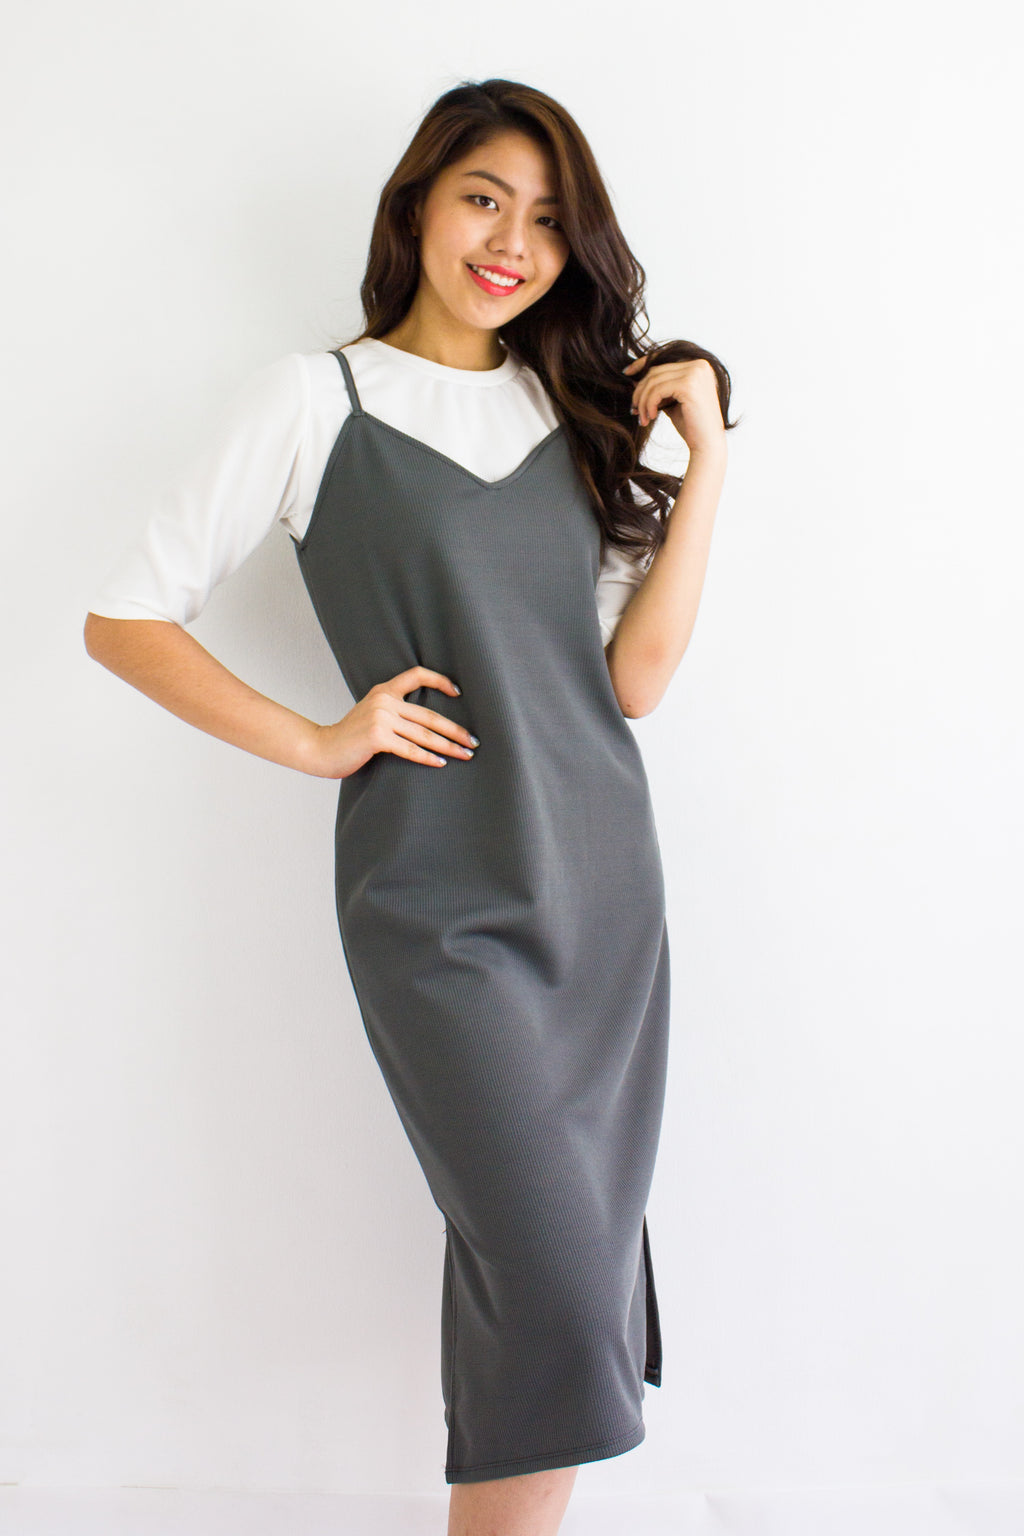 Classic Two Piece Midi Slip Dress in Charcoal Grey - DRESSES - Peep Boutique